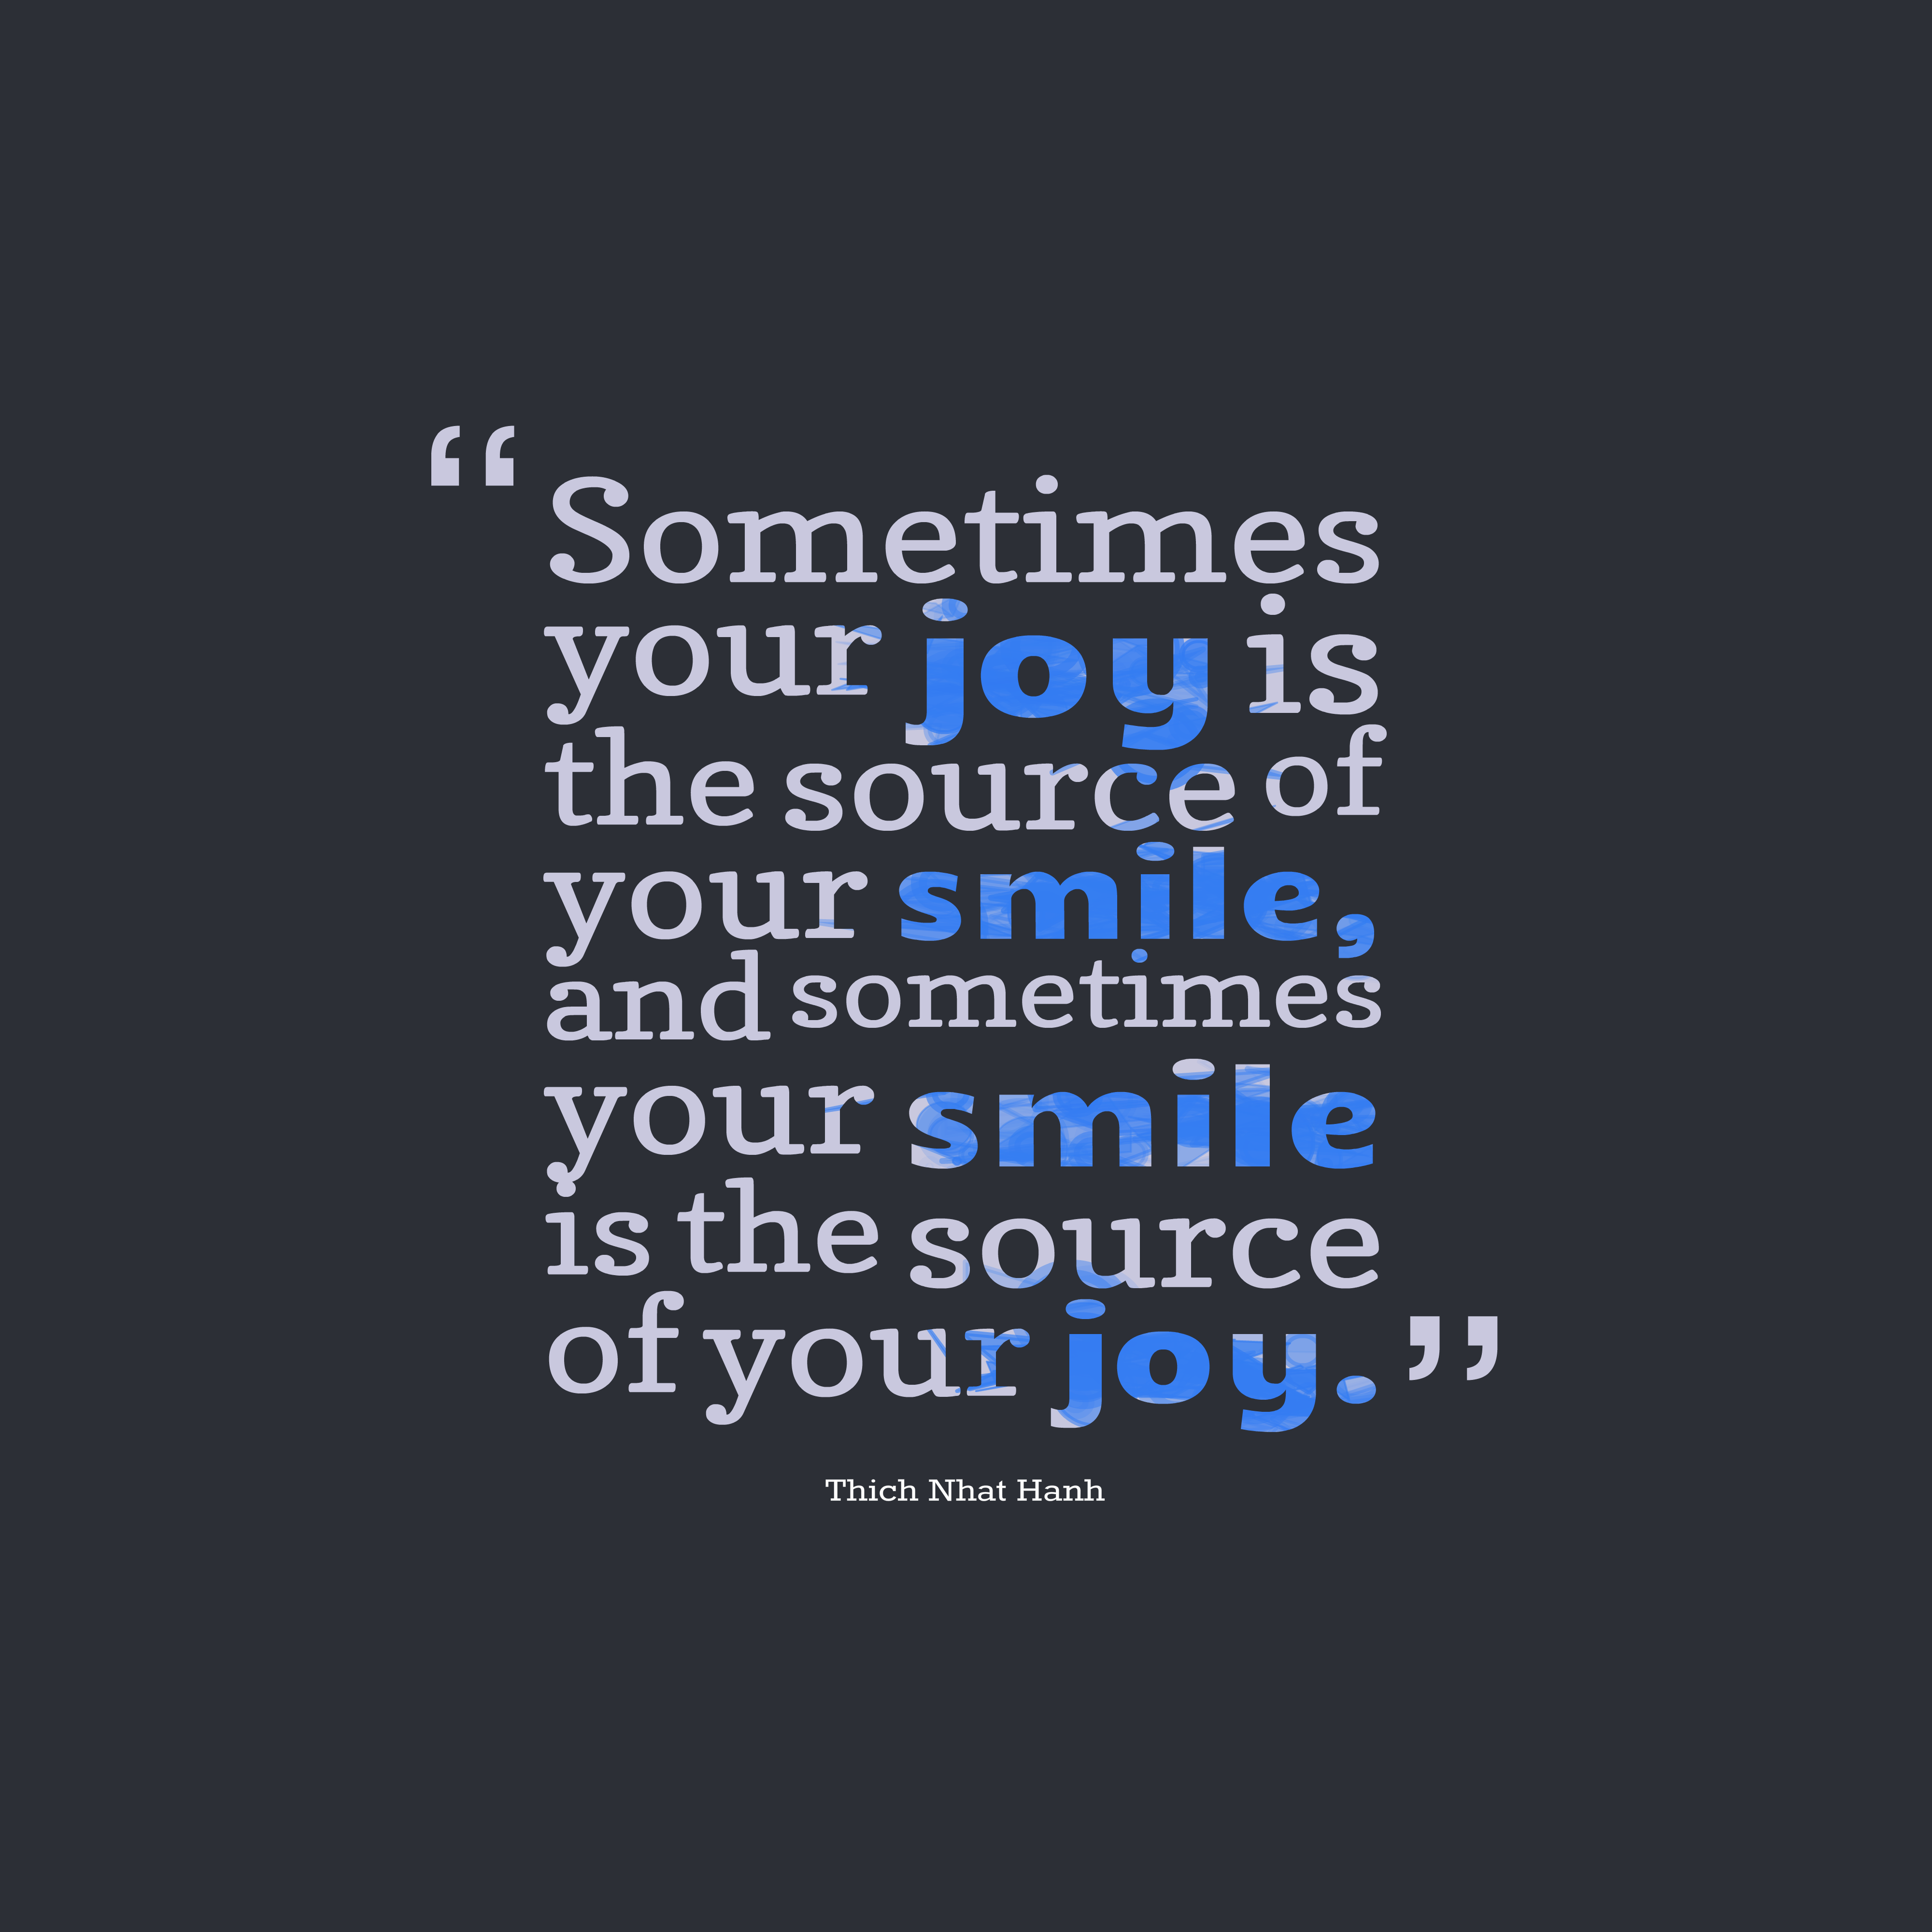 Thich Nhat Hanh Quote About Smile